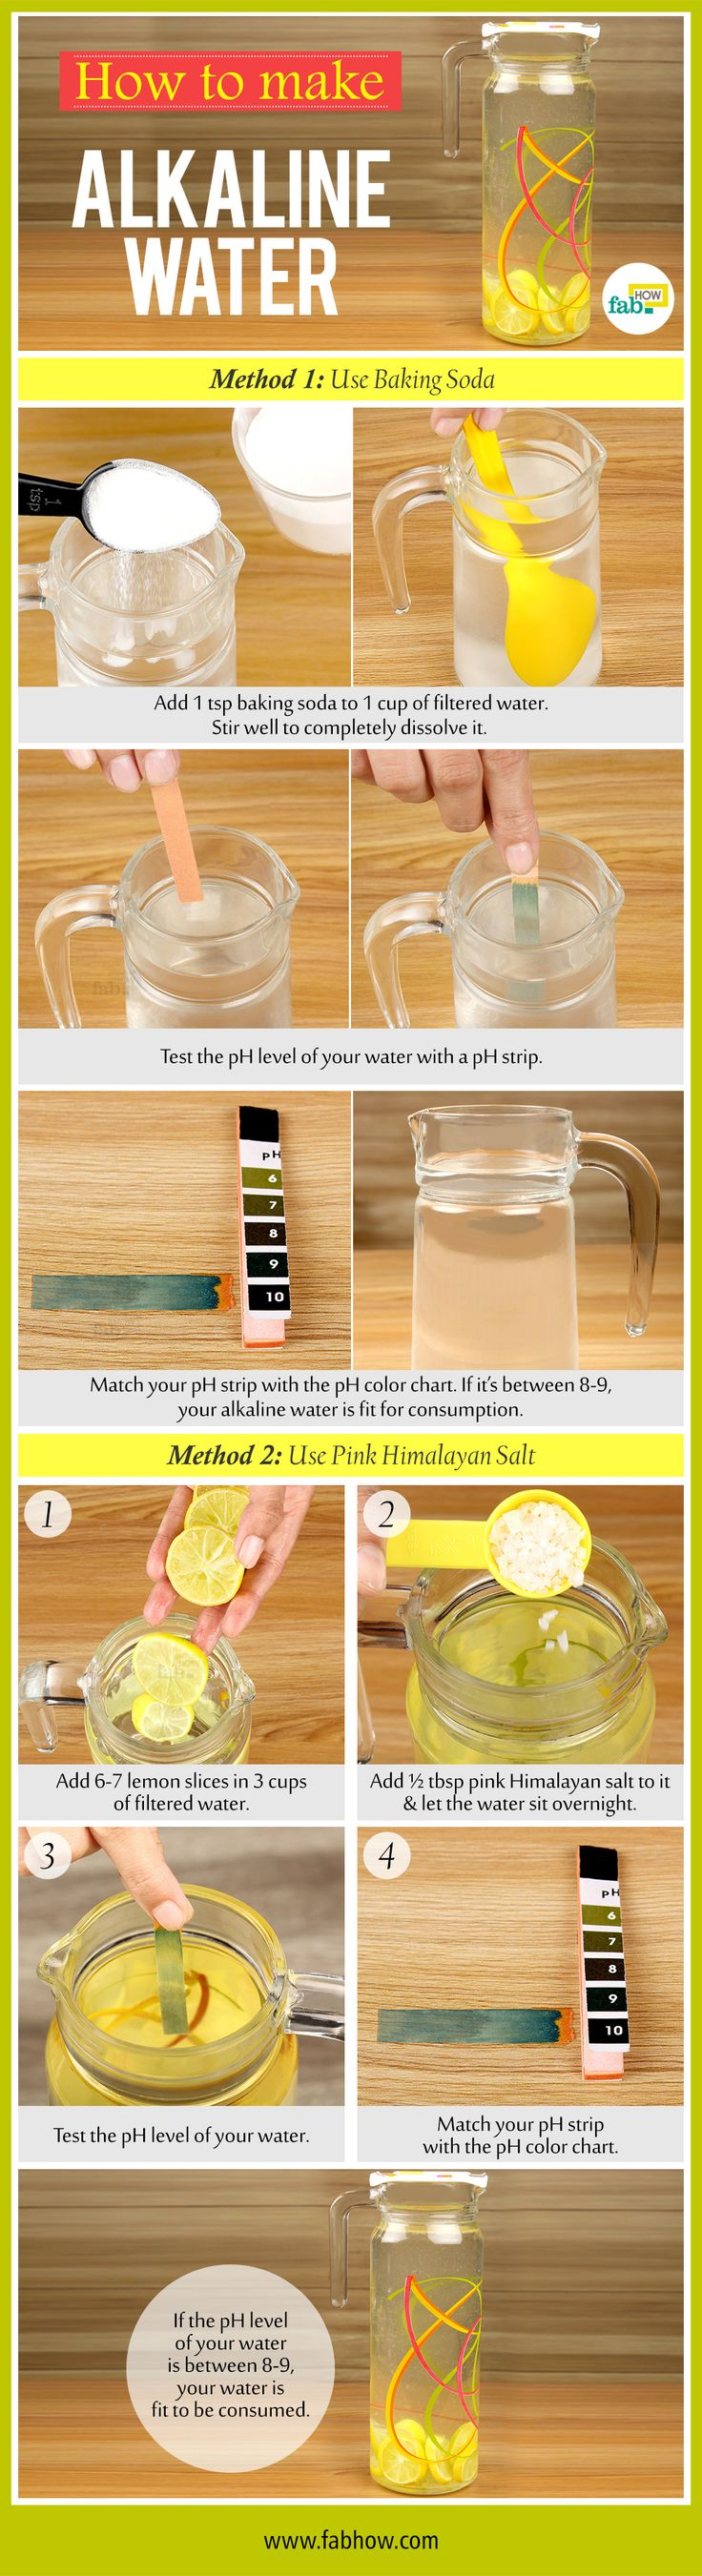 make alkaline water